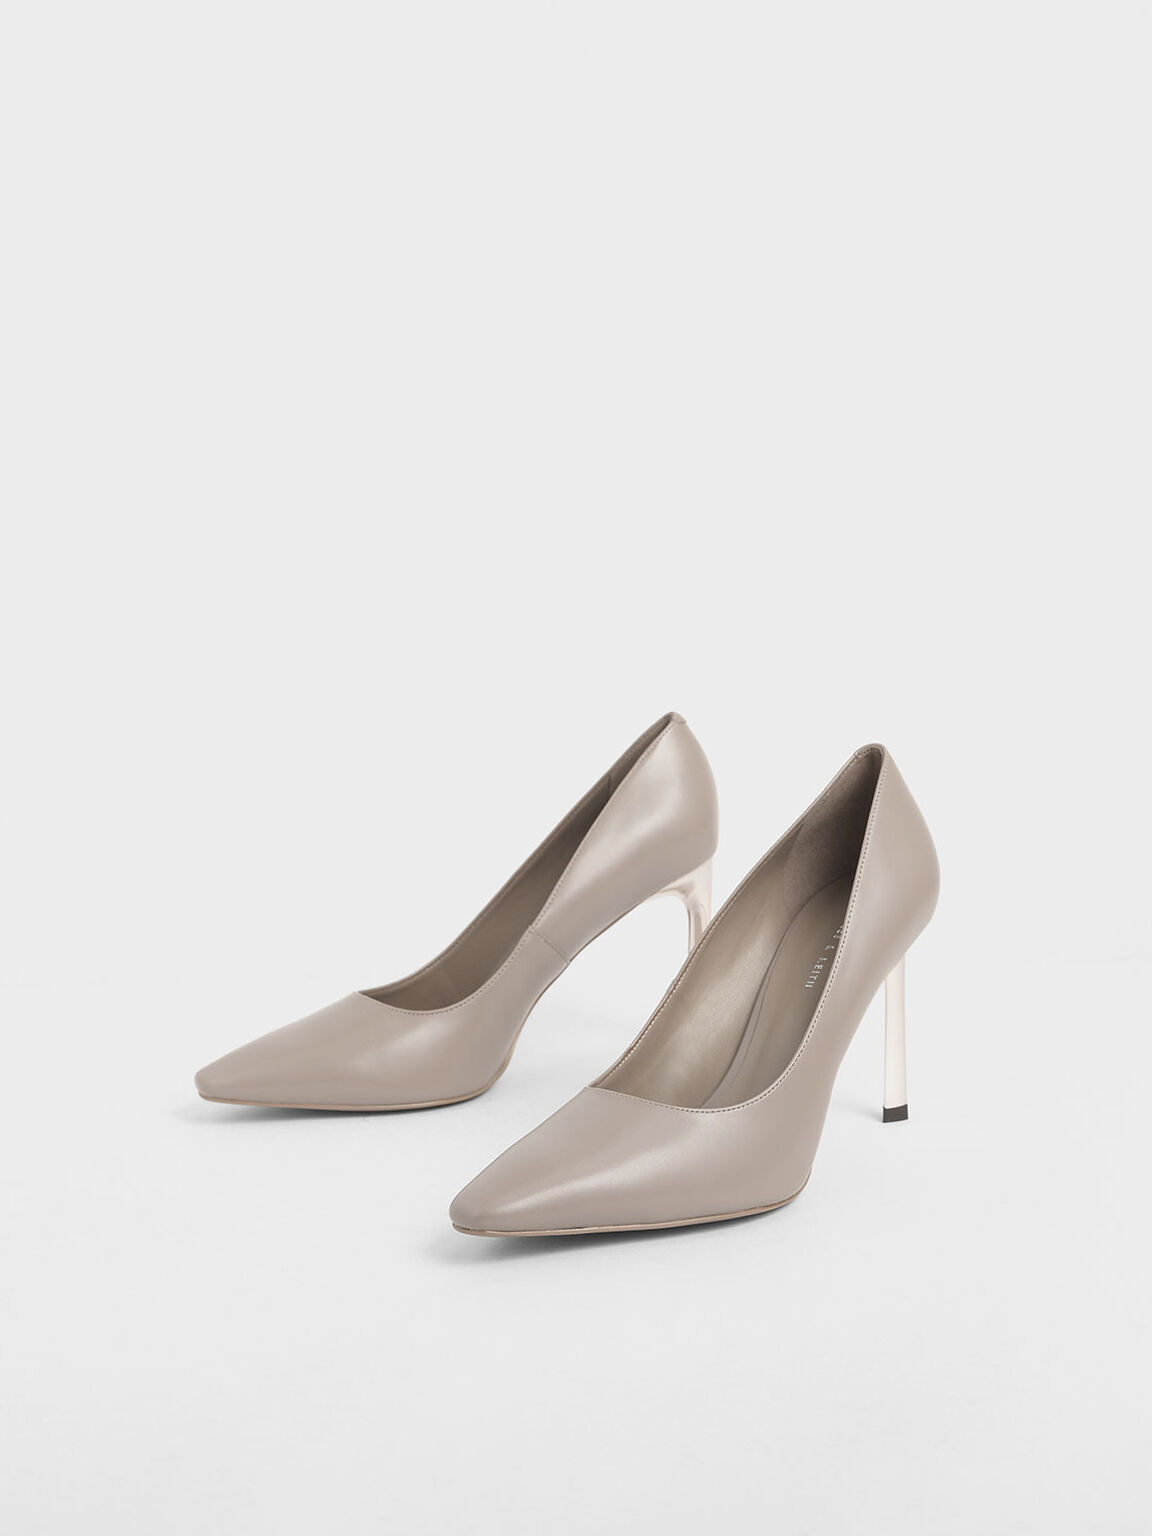 Sculptural Stiletto Pumps, Mauve, hi-res